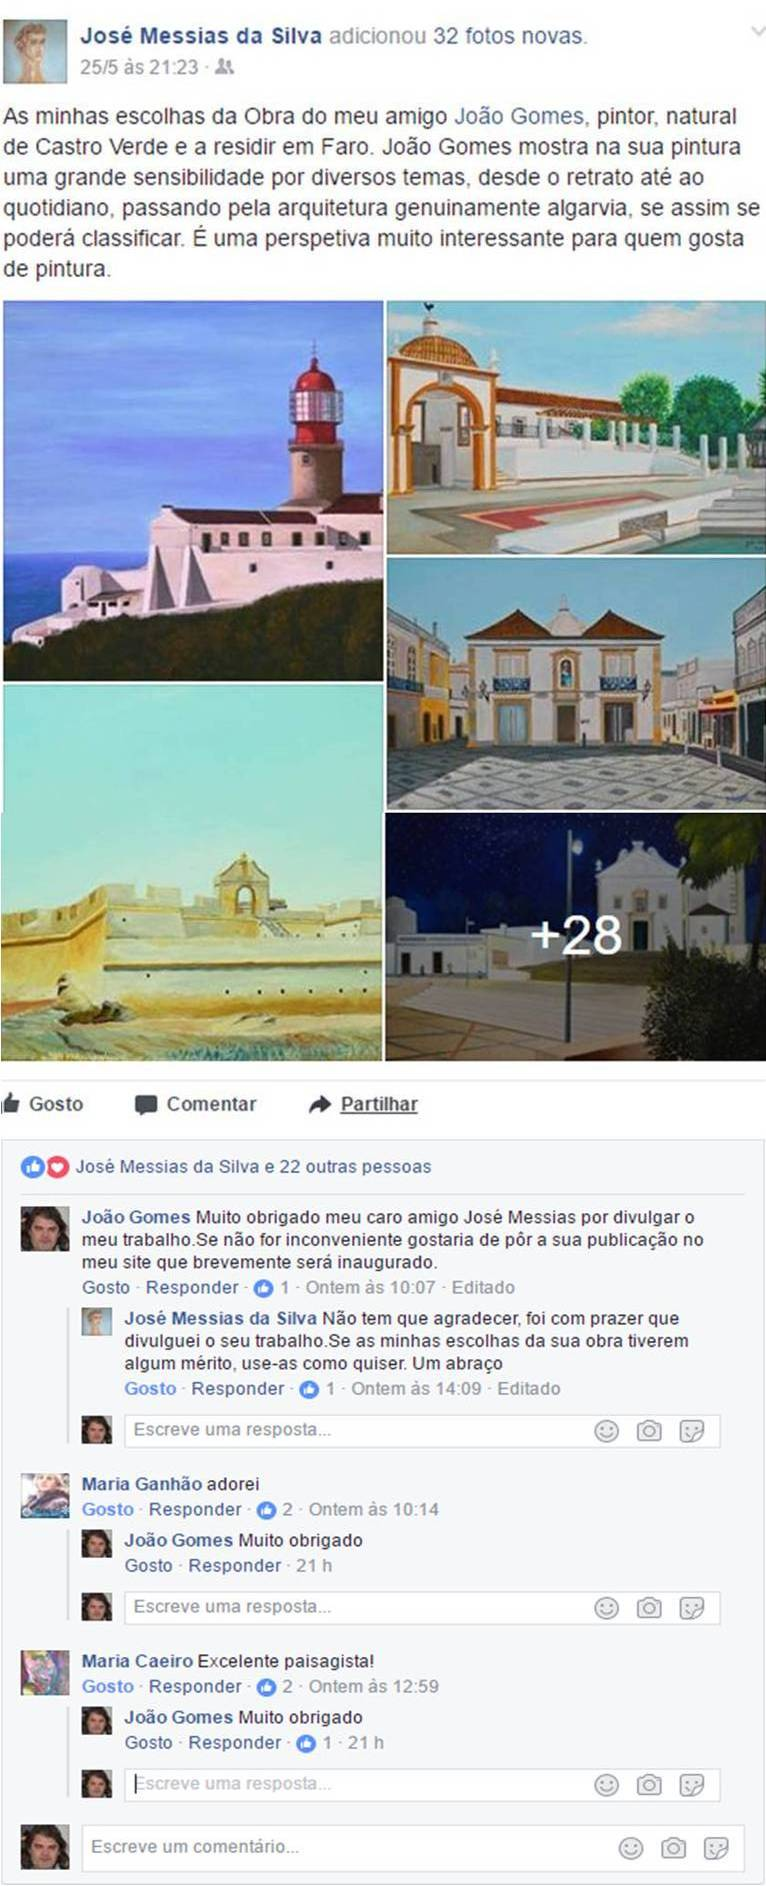 Publication of a friend on May 25, 2017, concerning works by Joao Gomes and respective comments of people following the artist and his works on the social media.